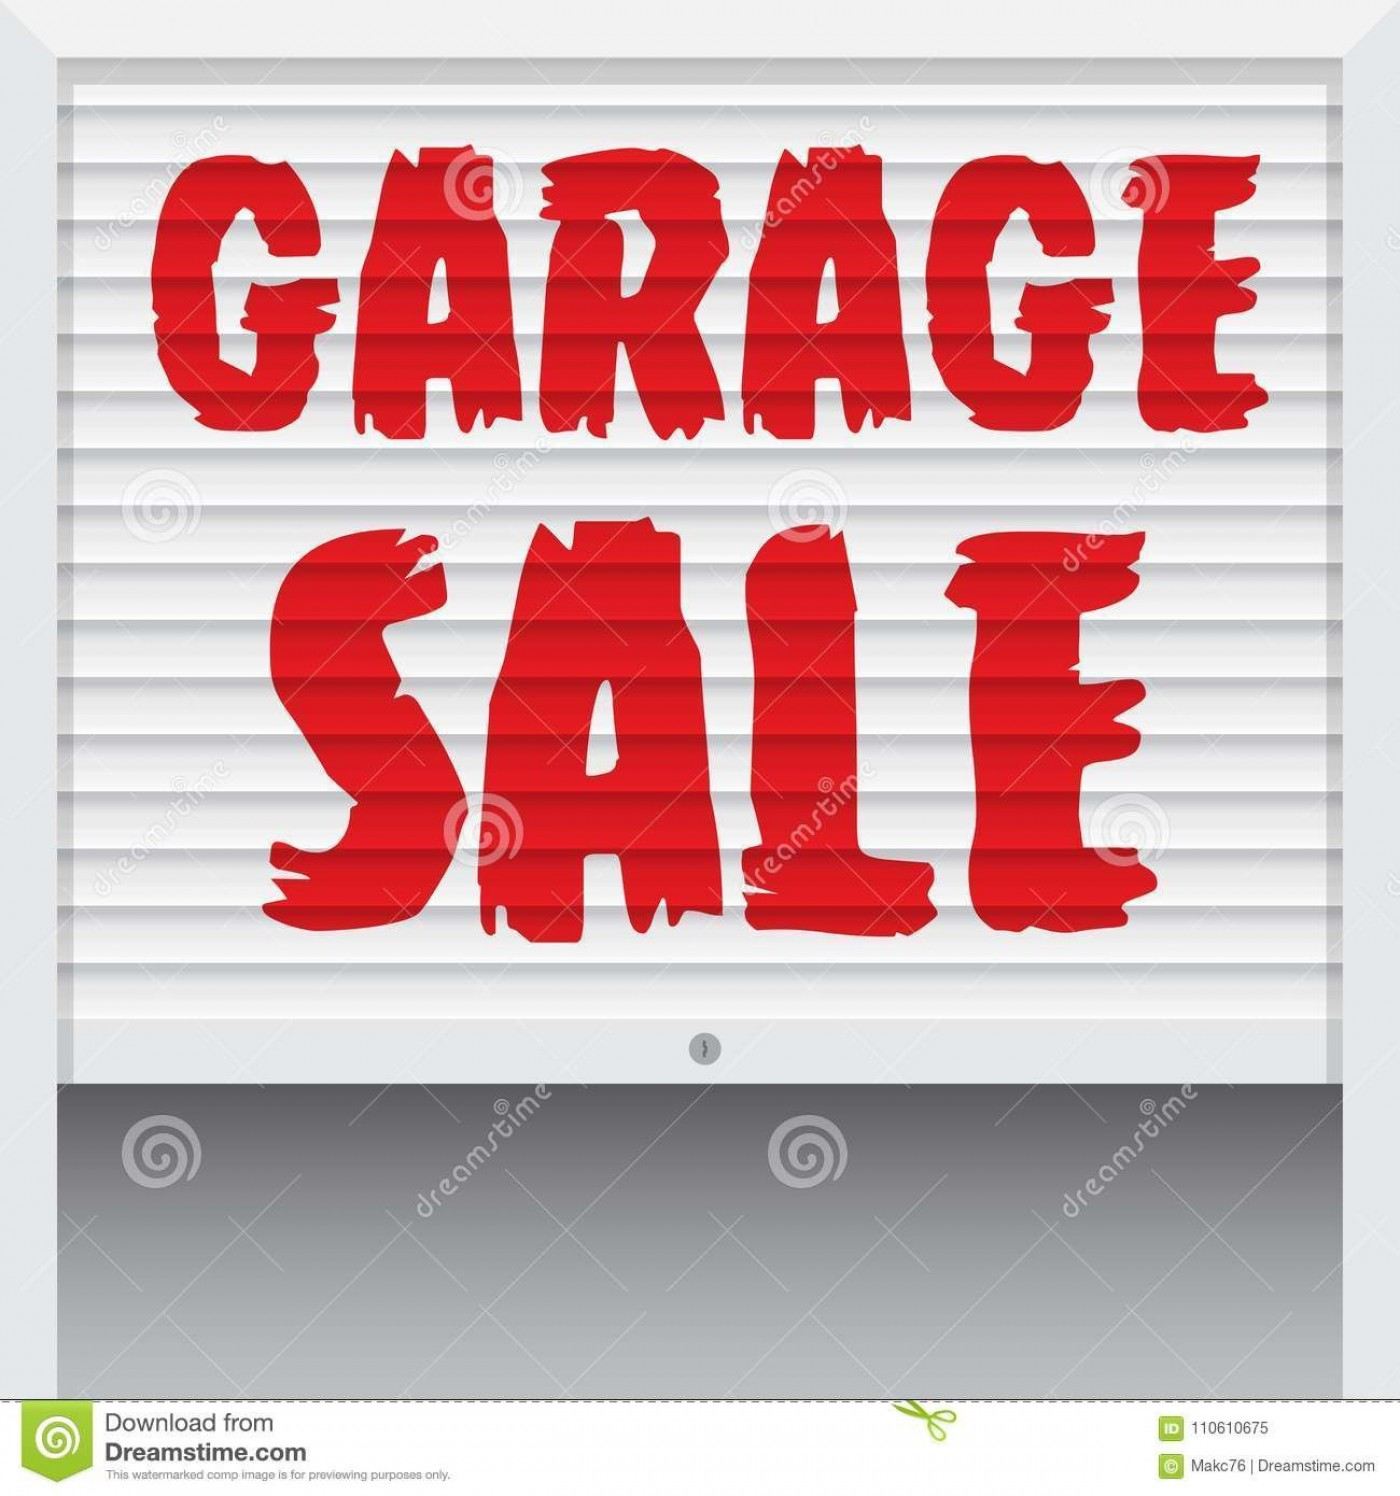 006 Breathtaking Garage Sale Sign Template Photo  Flyer Microsoft Word Community Yard Free Rummage1400